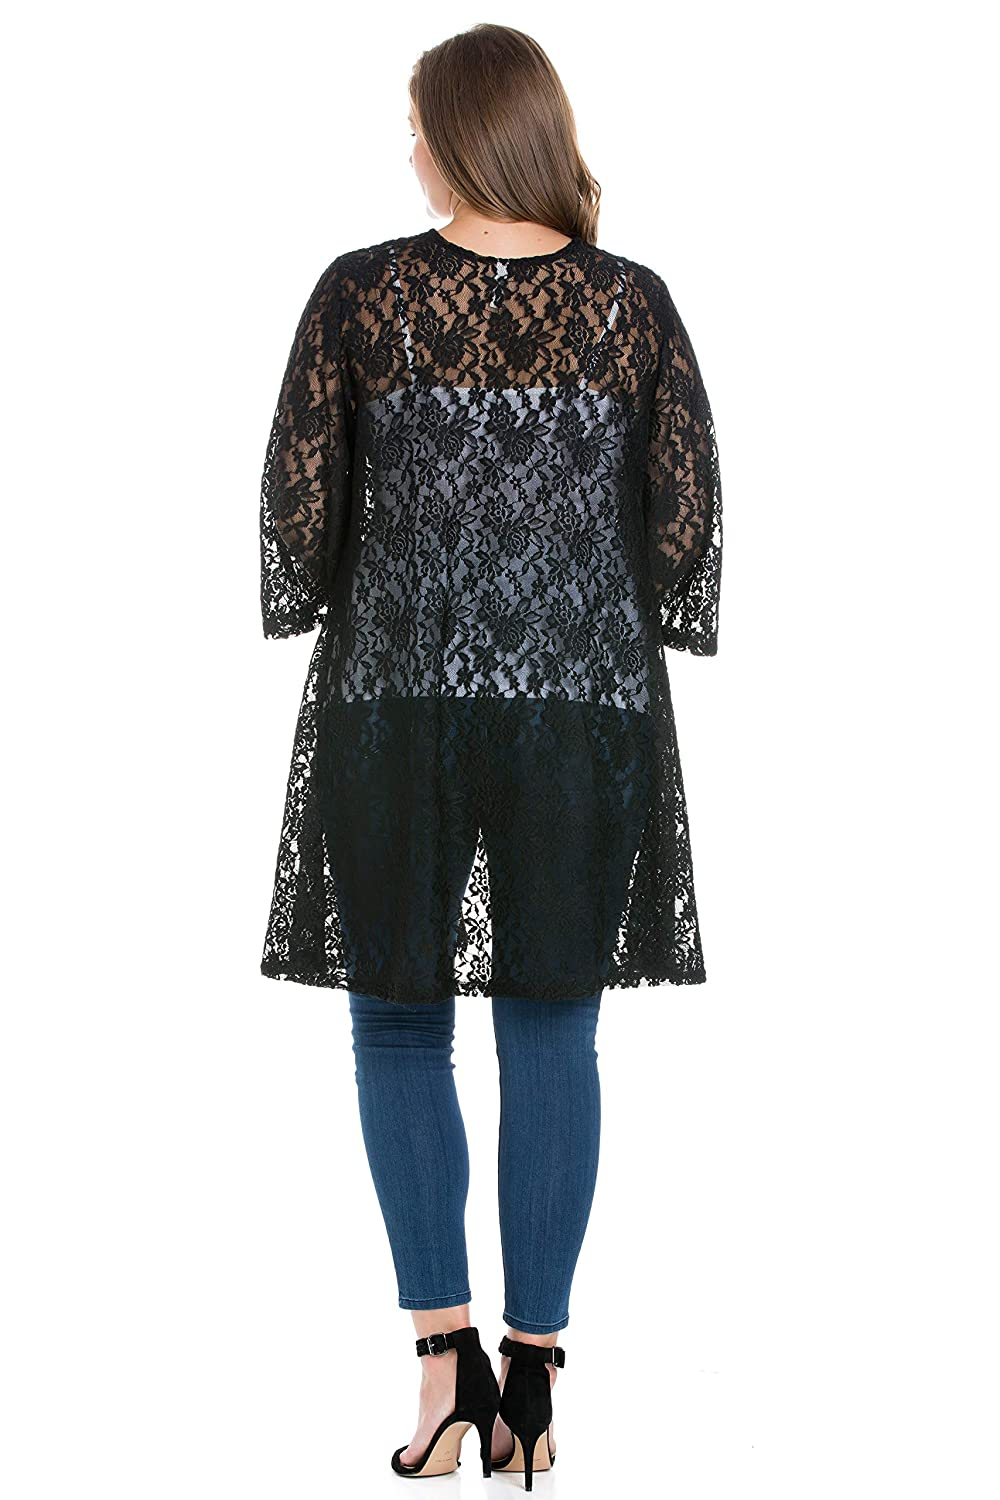 2090313a01 24seven Comfort Apparel Womens Plus Size 3/4 Sleeve Long Lace Open Front  Cardigan Sizes ...